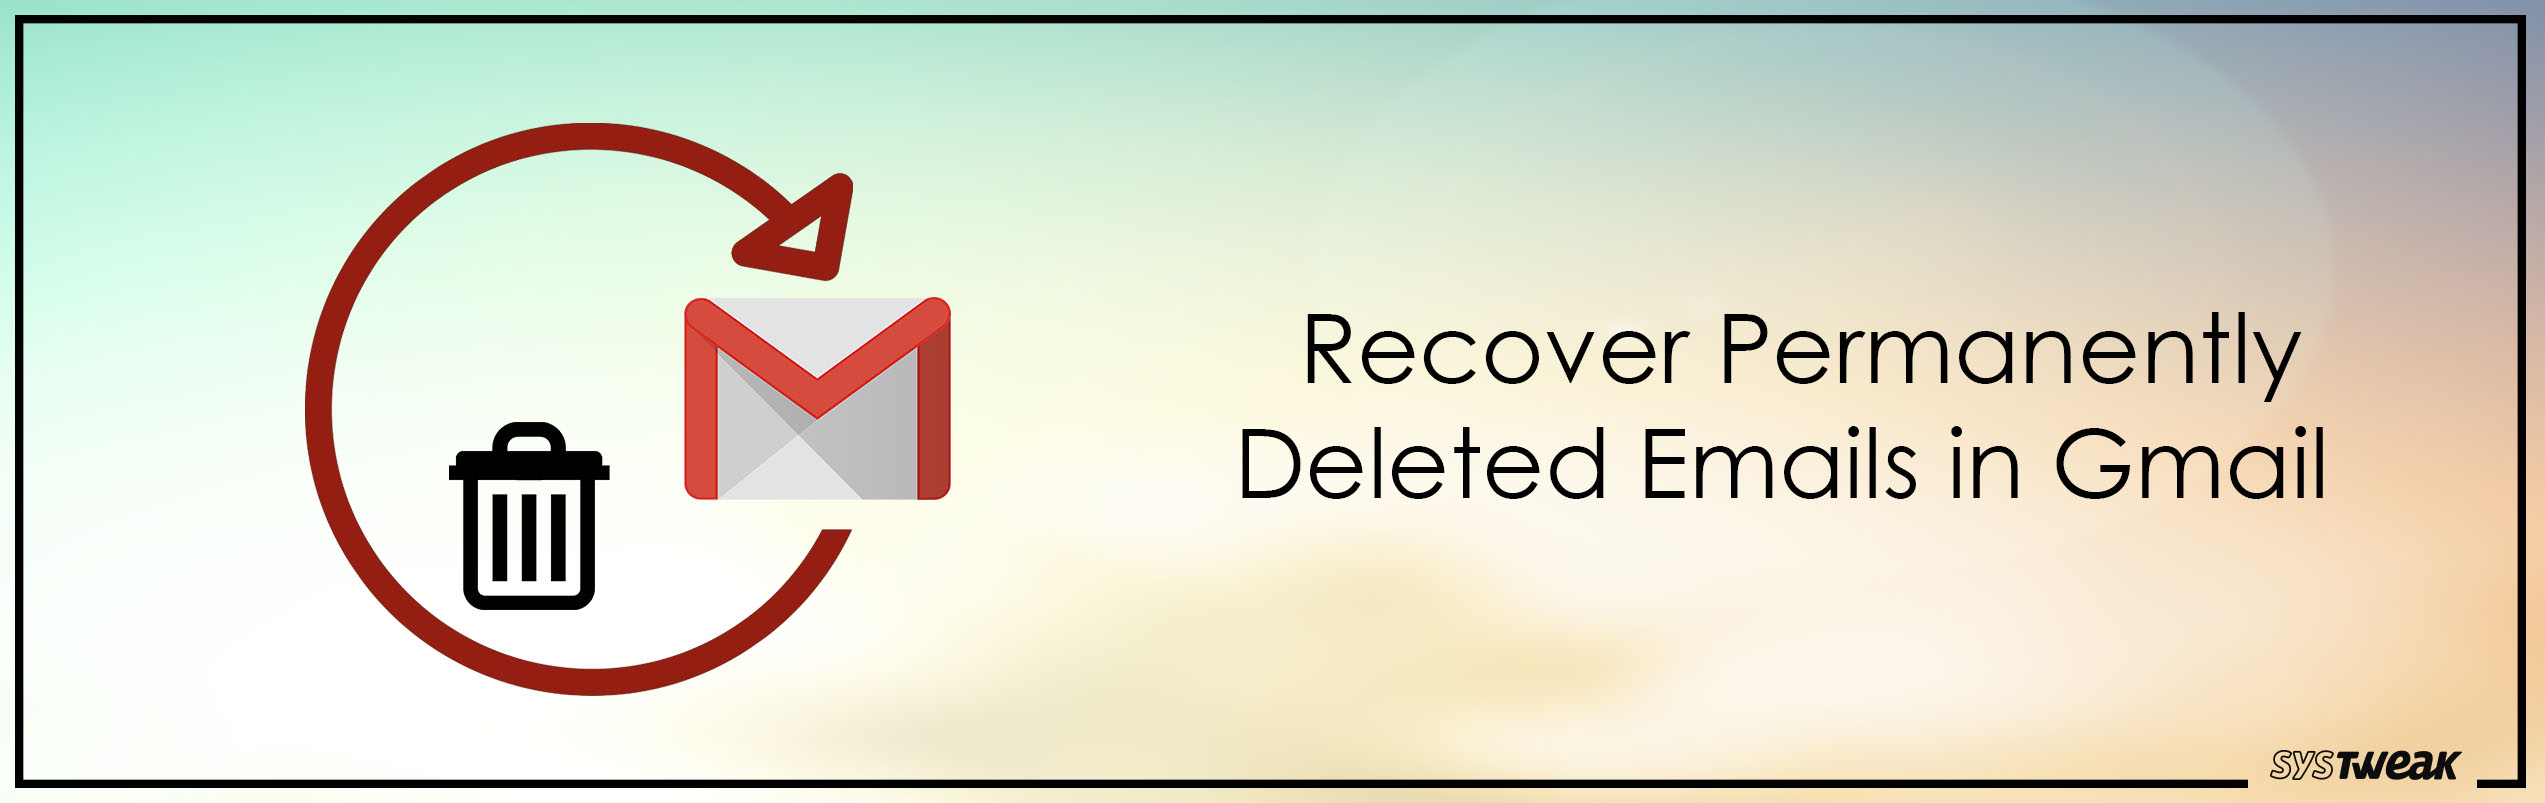 How To Recover Permanently Deleted Emails in Gmail?